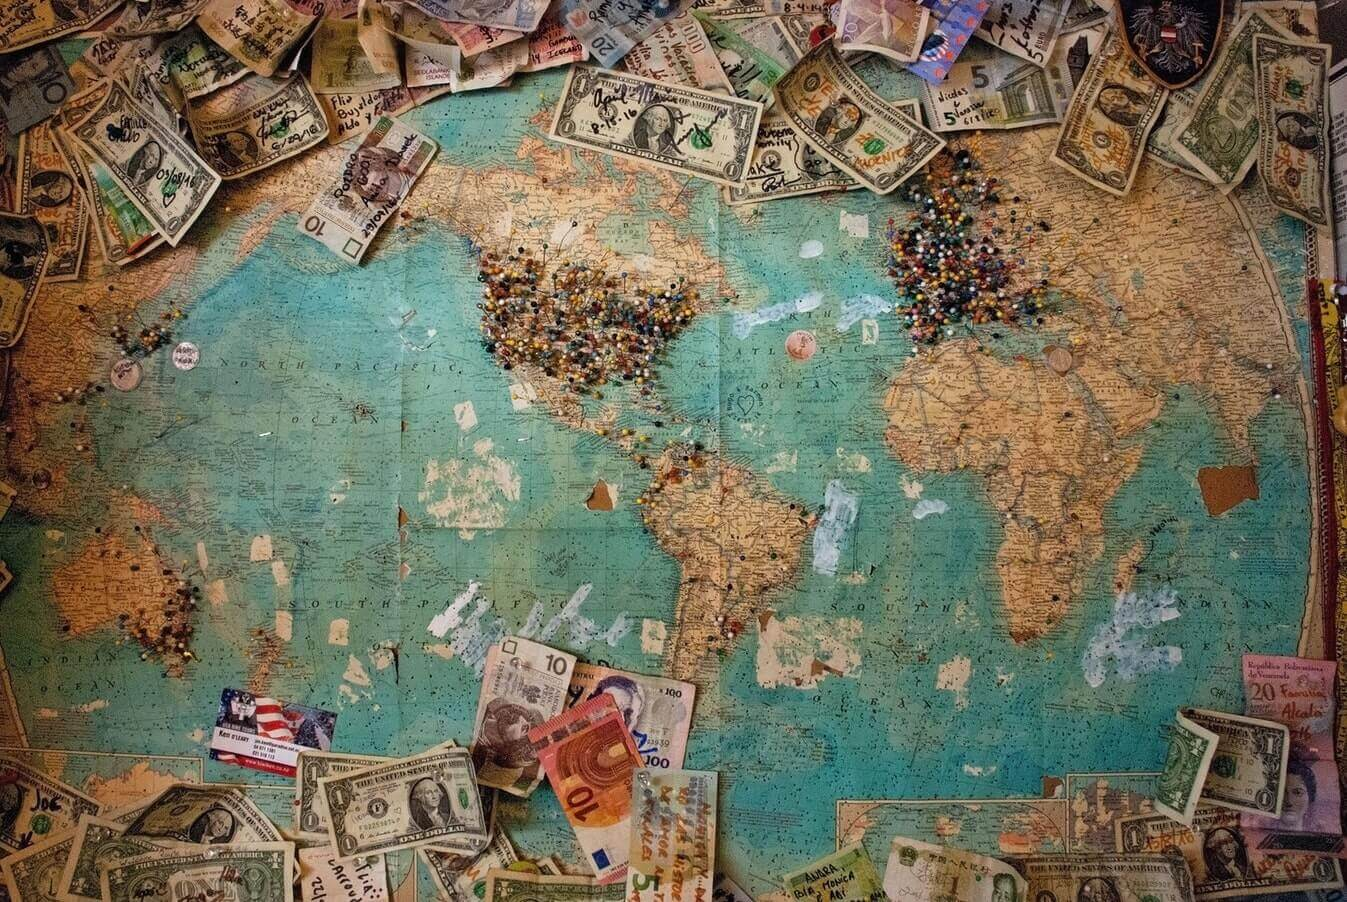 7 ways to make money with help of your language skills